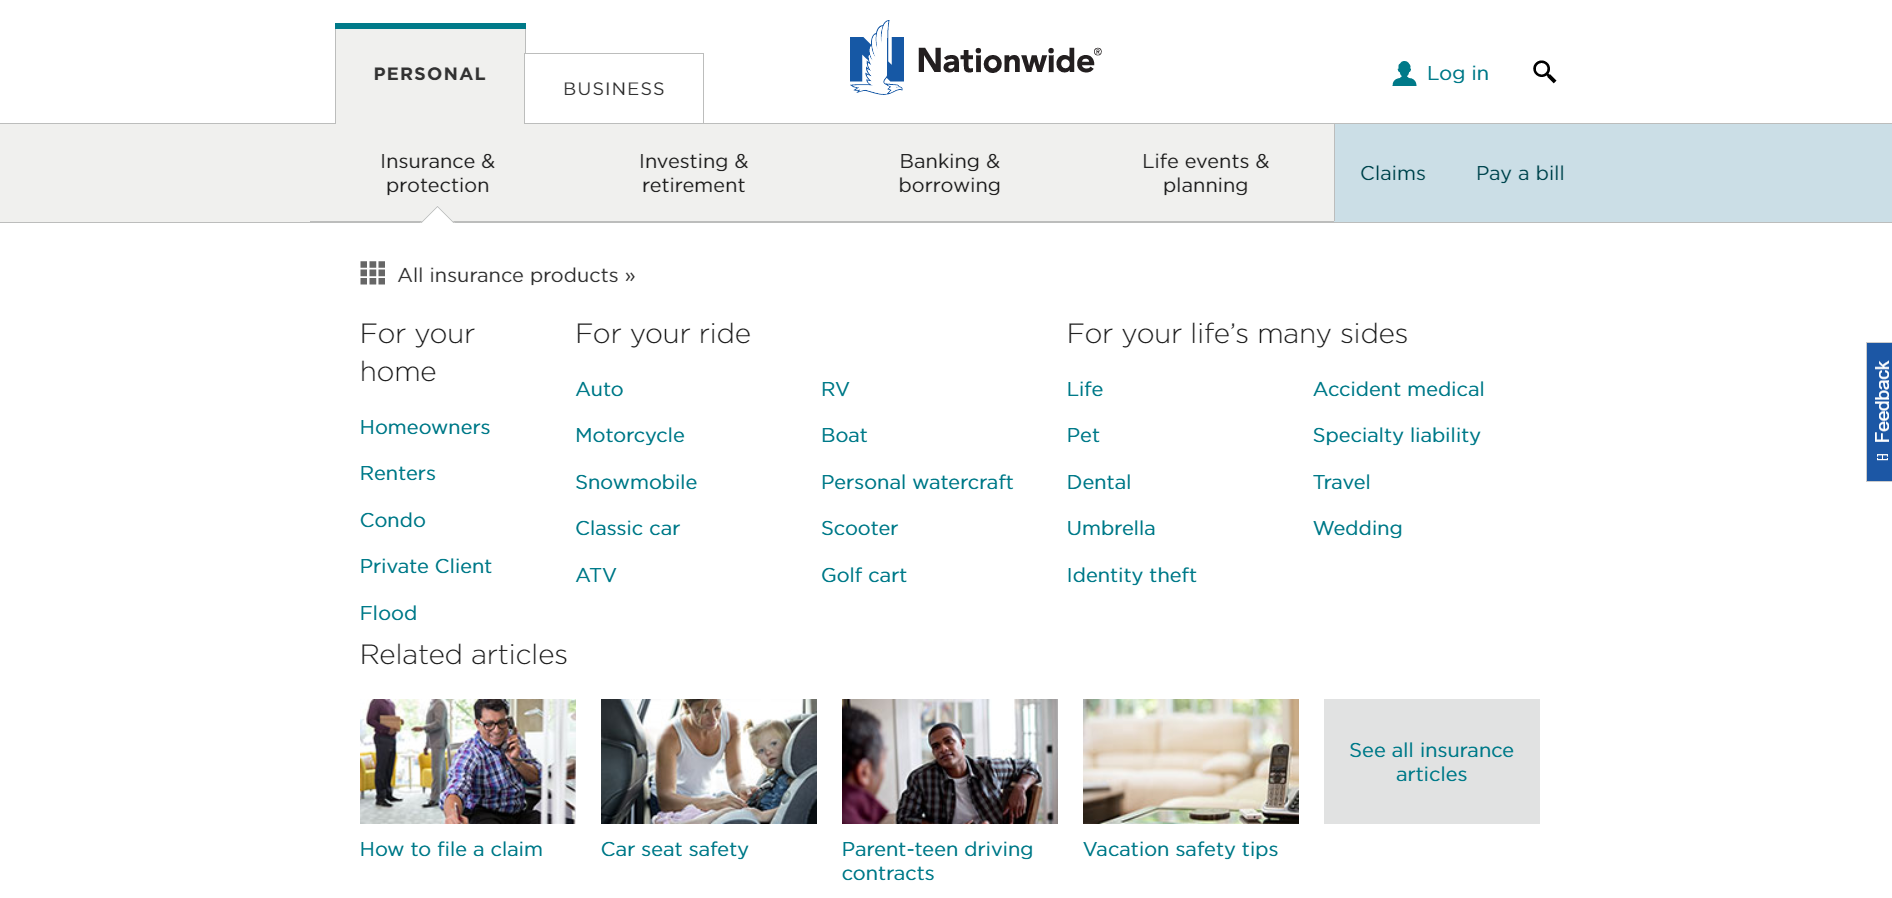 Nationwide mobile app home page